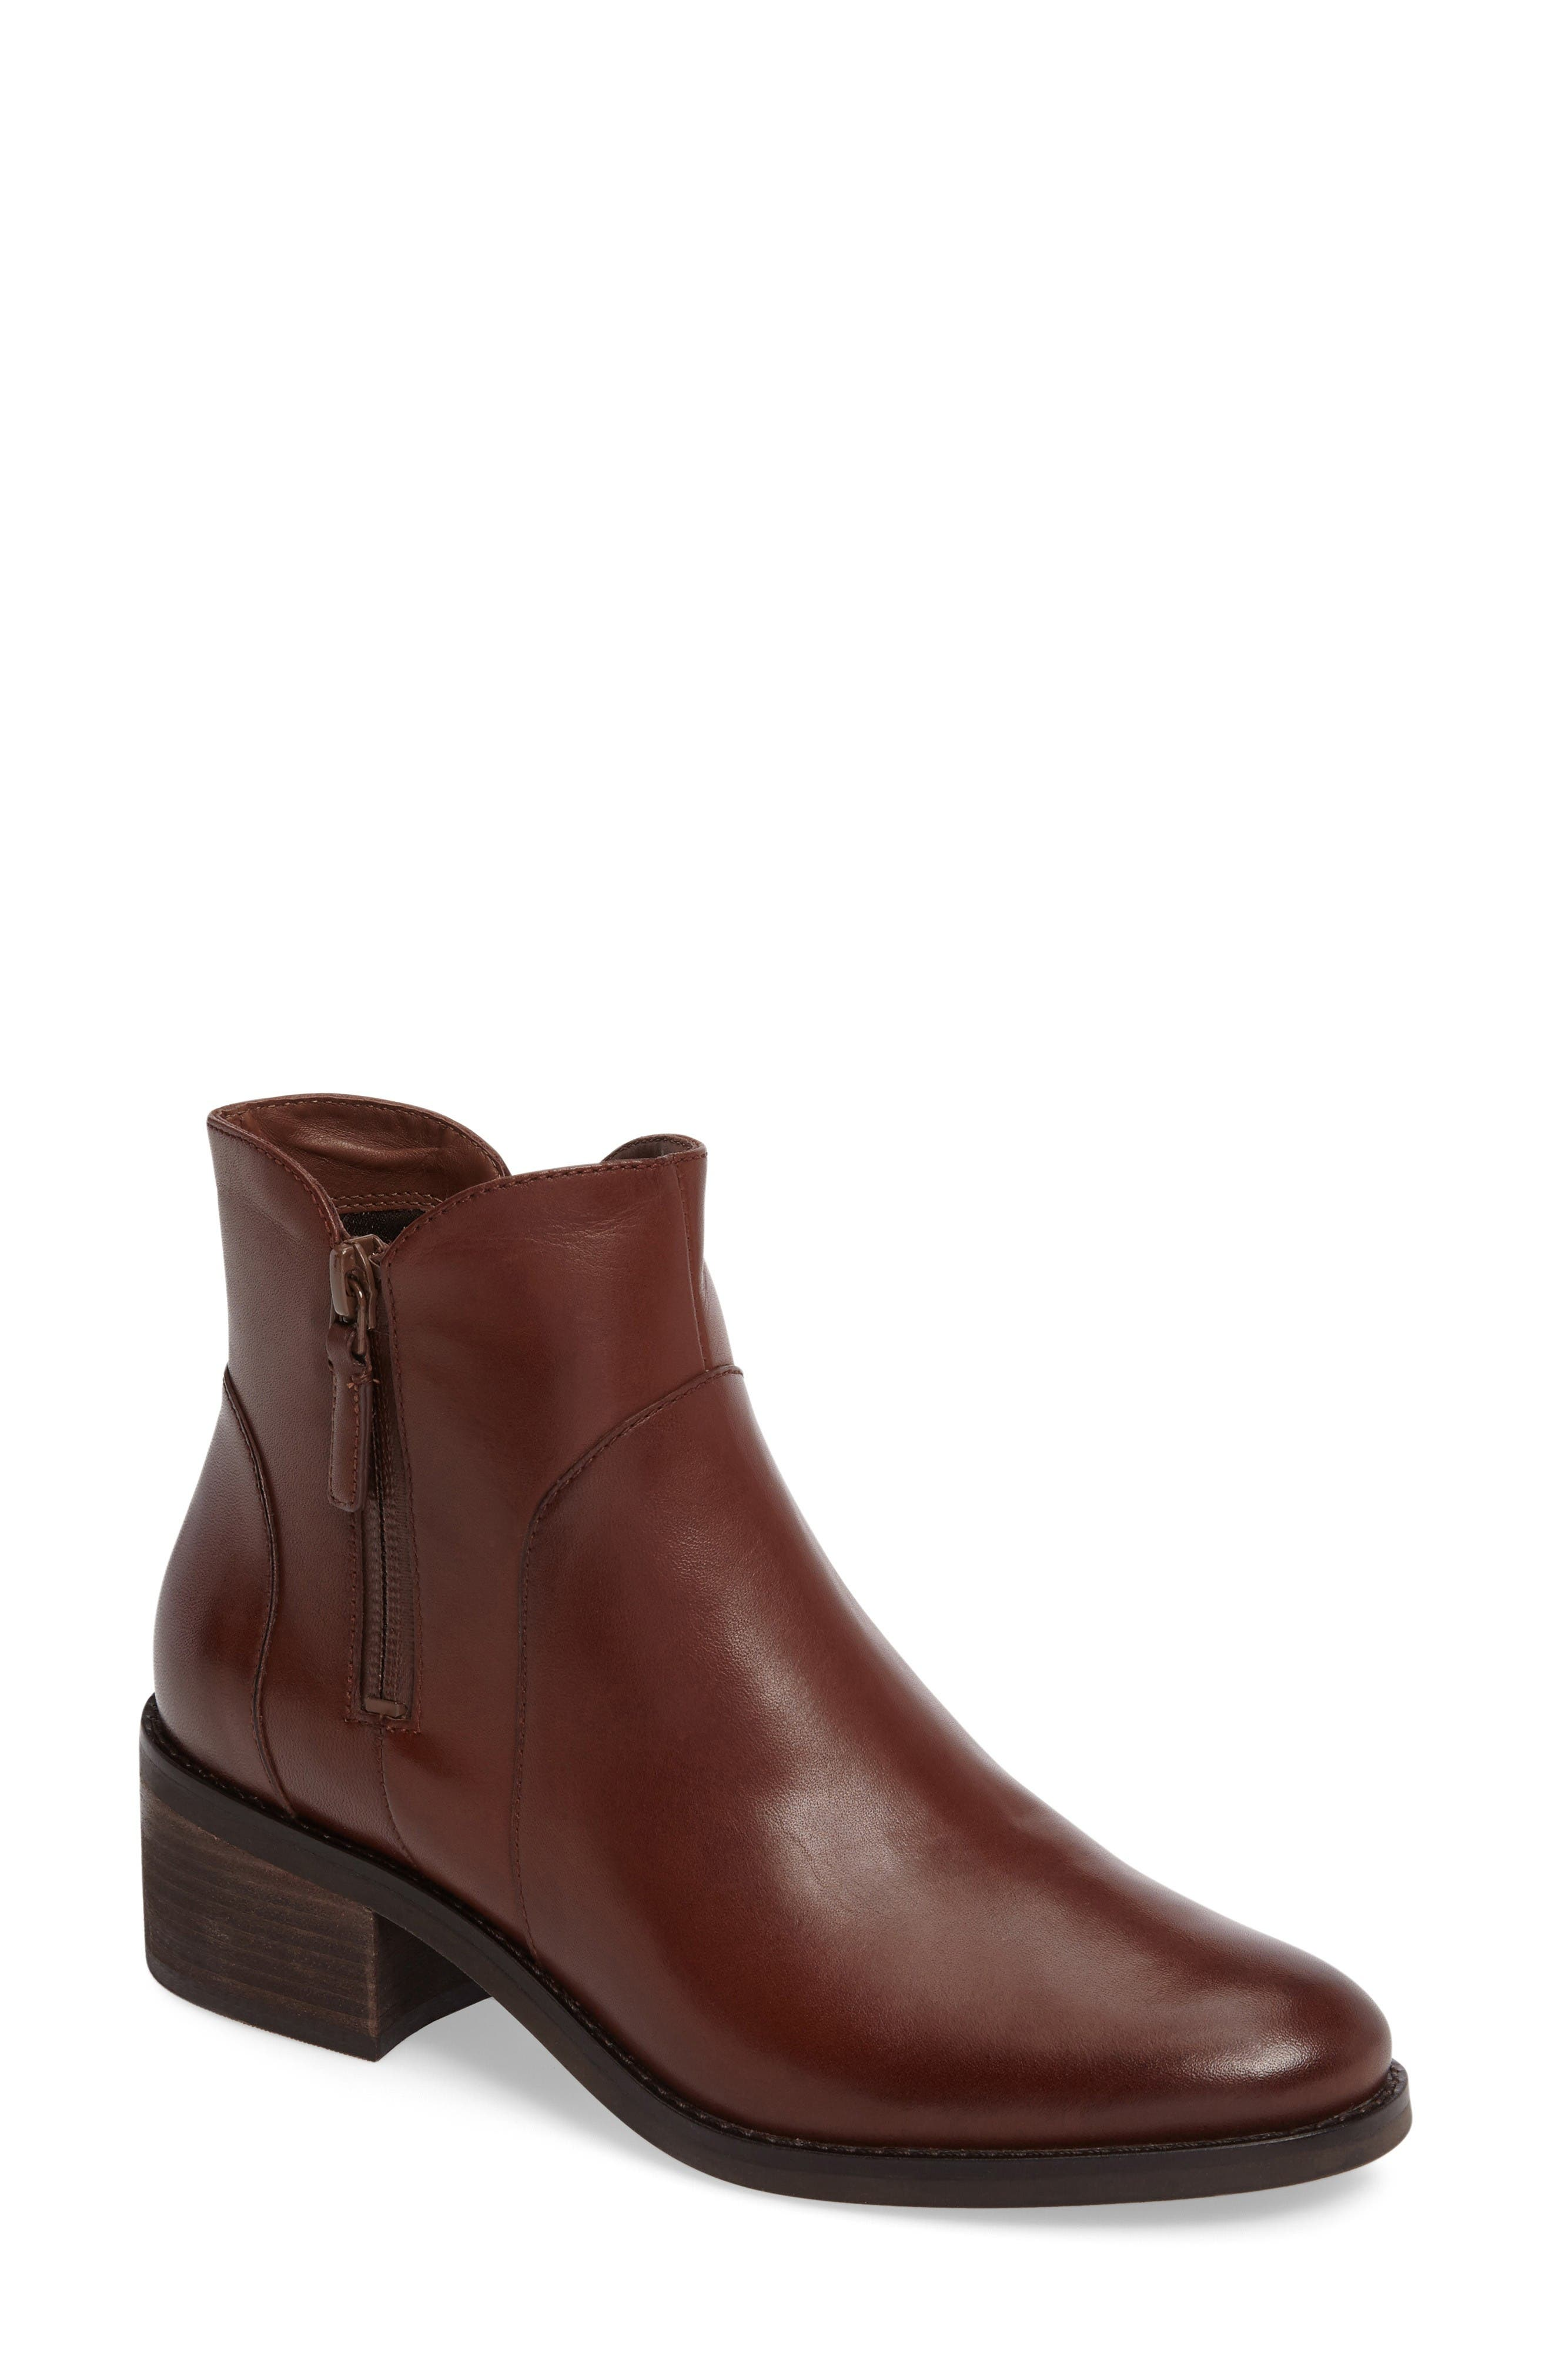 Alternate Image 1 Selected - Cole Haan Lyla Waterproof Bootie (Women)